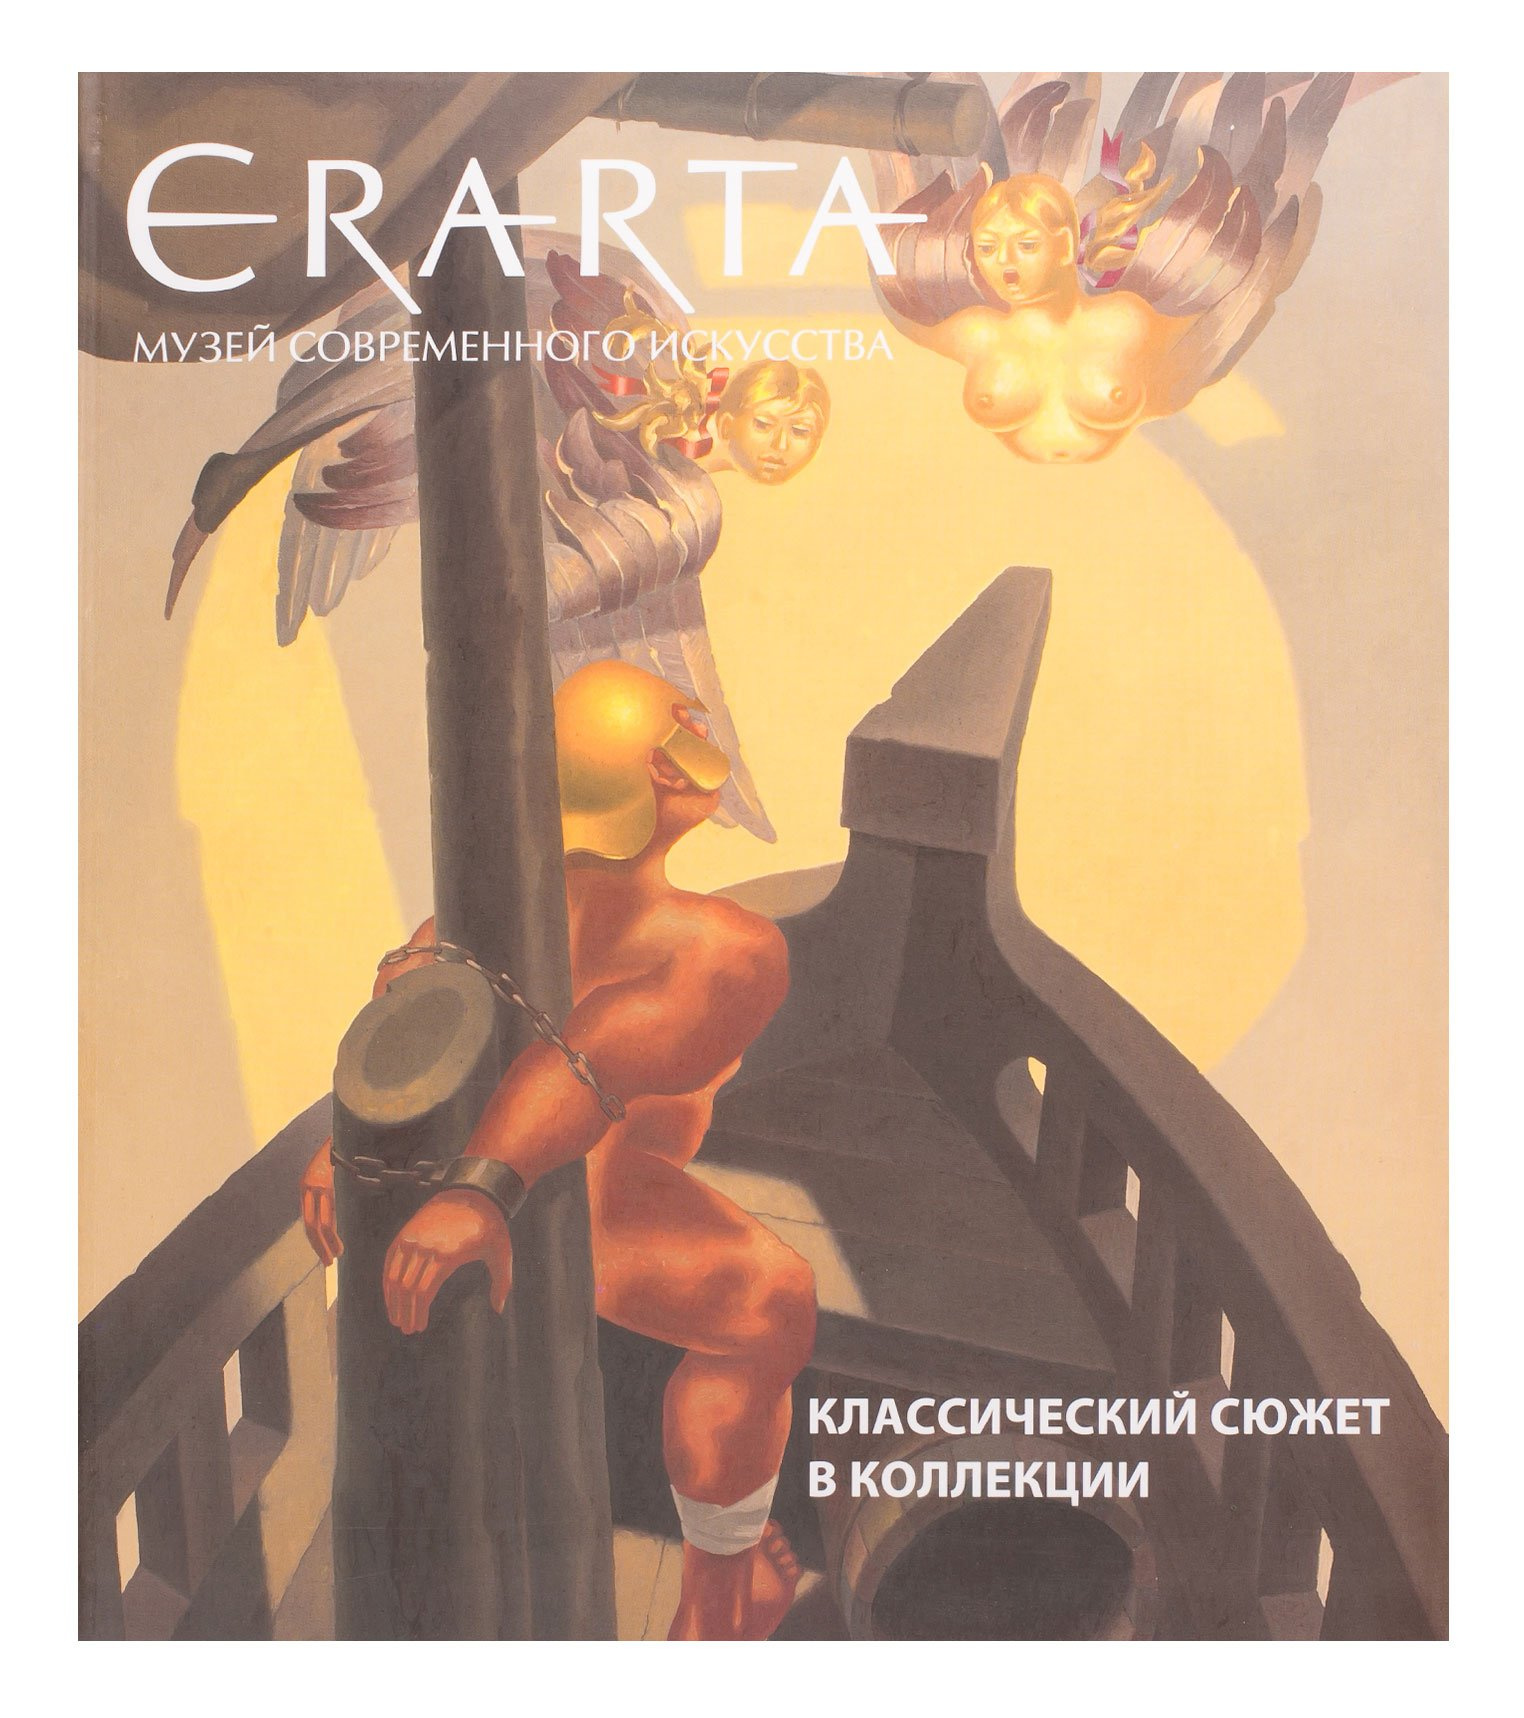 Catalog «Erarta. Classic plot in collection»